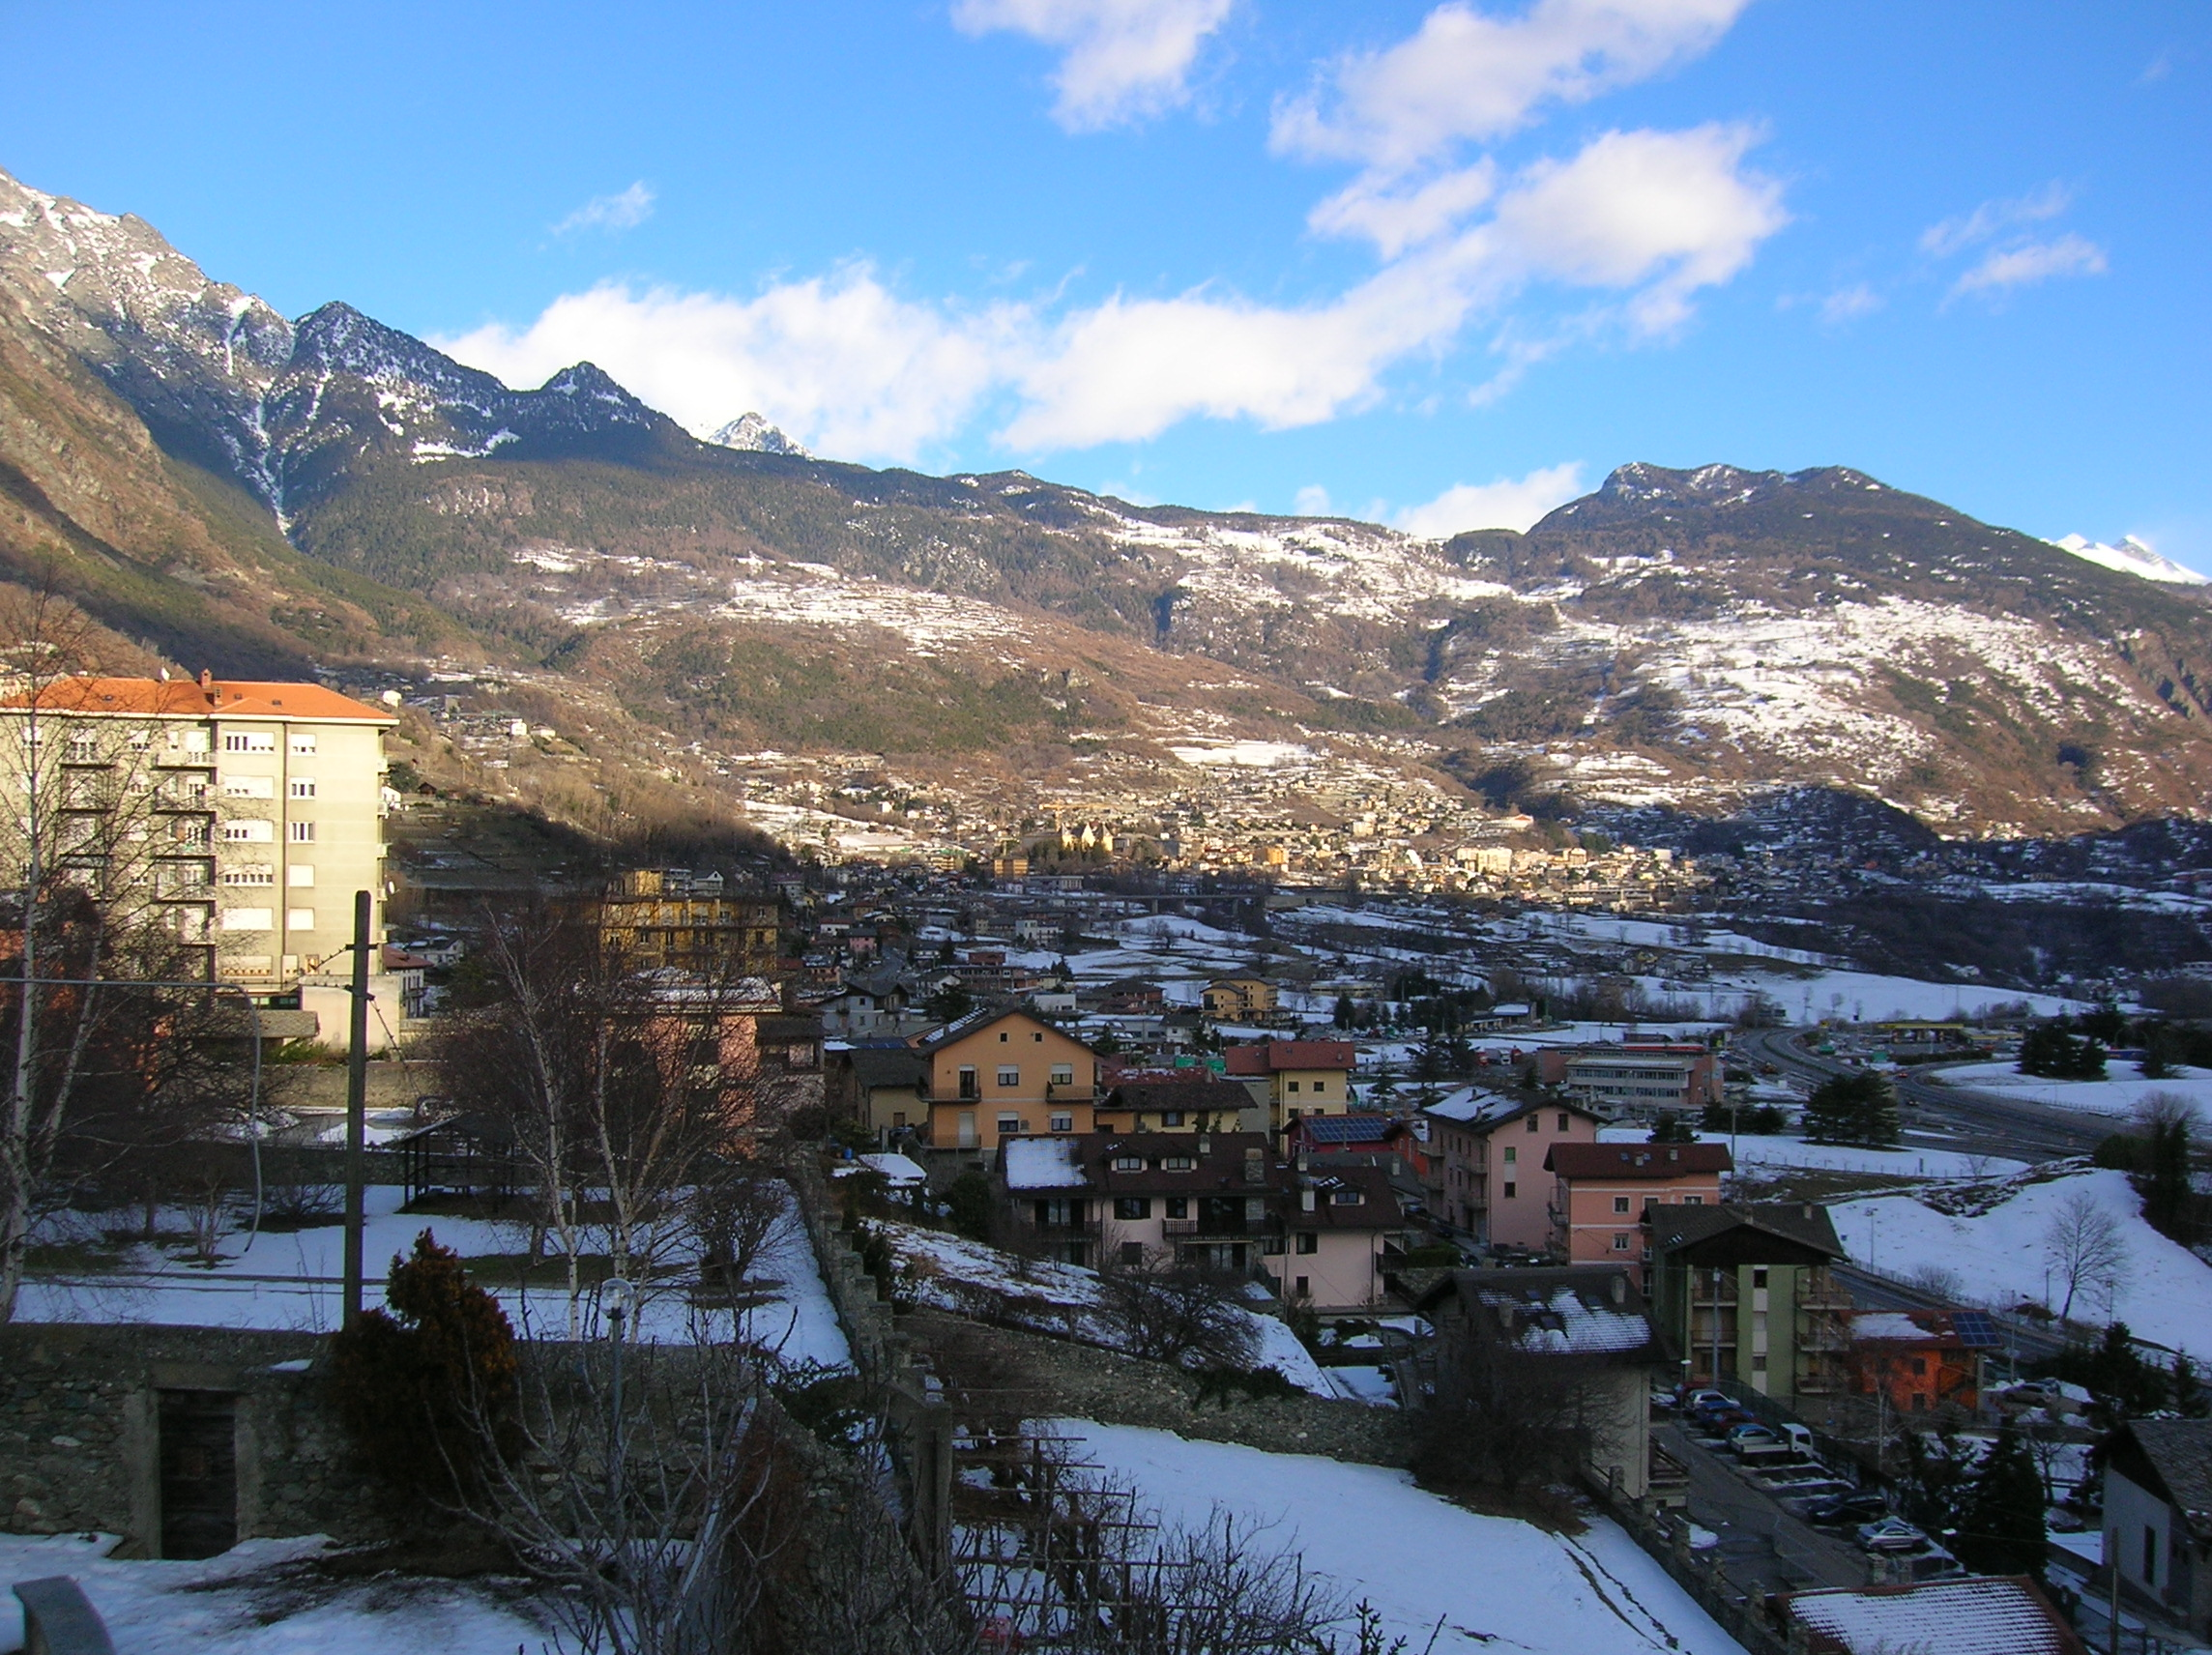 Chatillon in the Alps